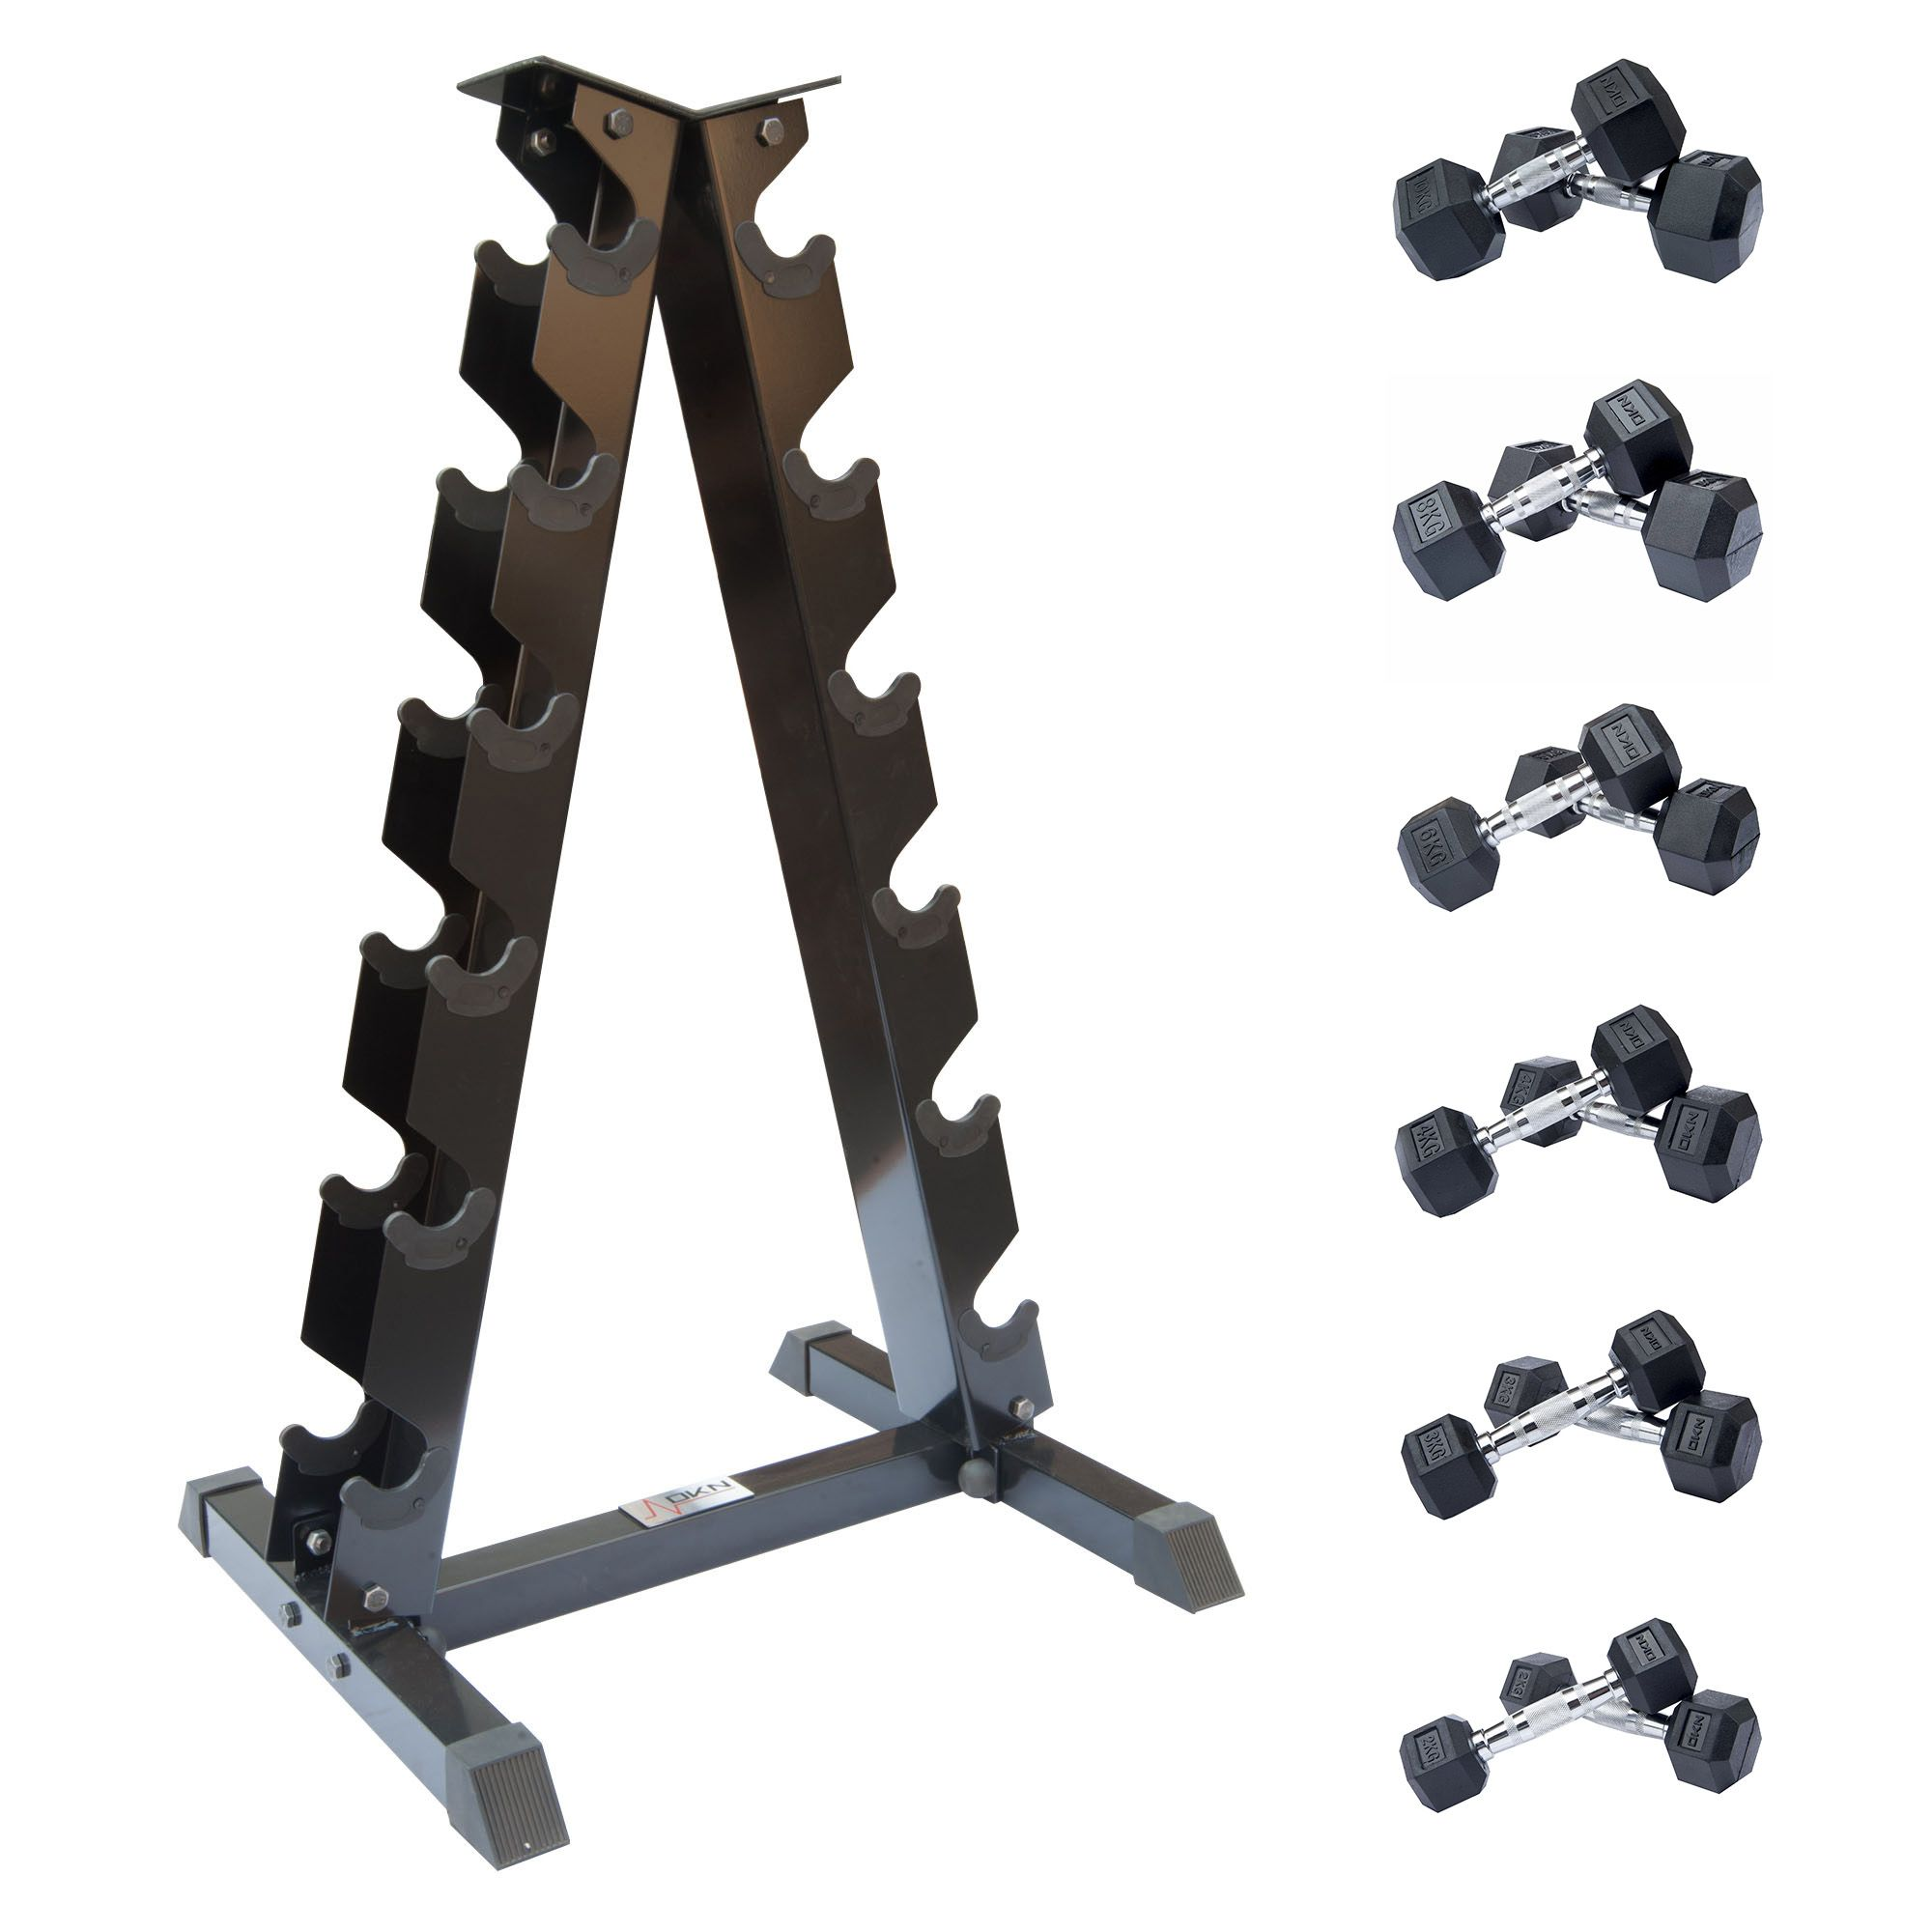 Cheapest Dumbbell Set: DKN 2kg To 10kg Rubber Hex Dumbbell Set With Storage Rack